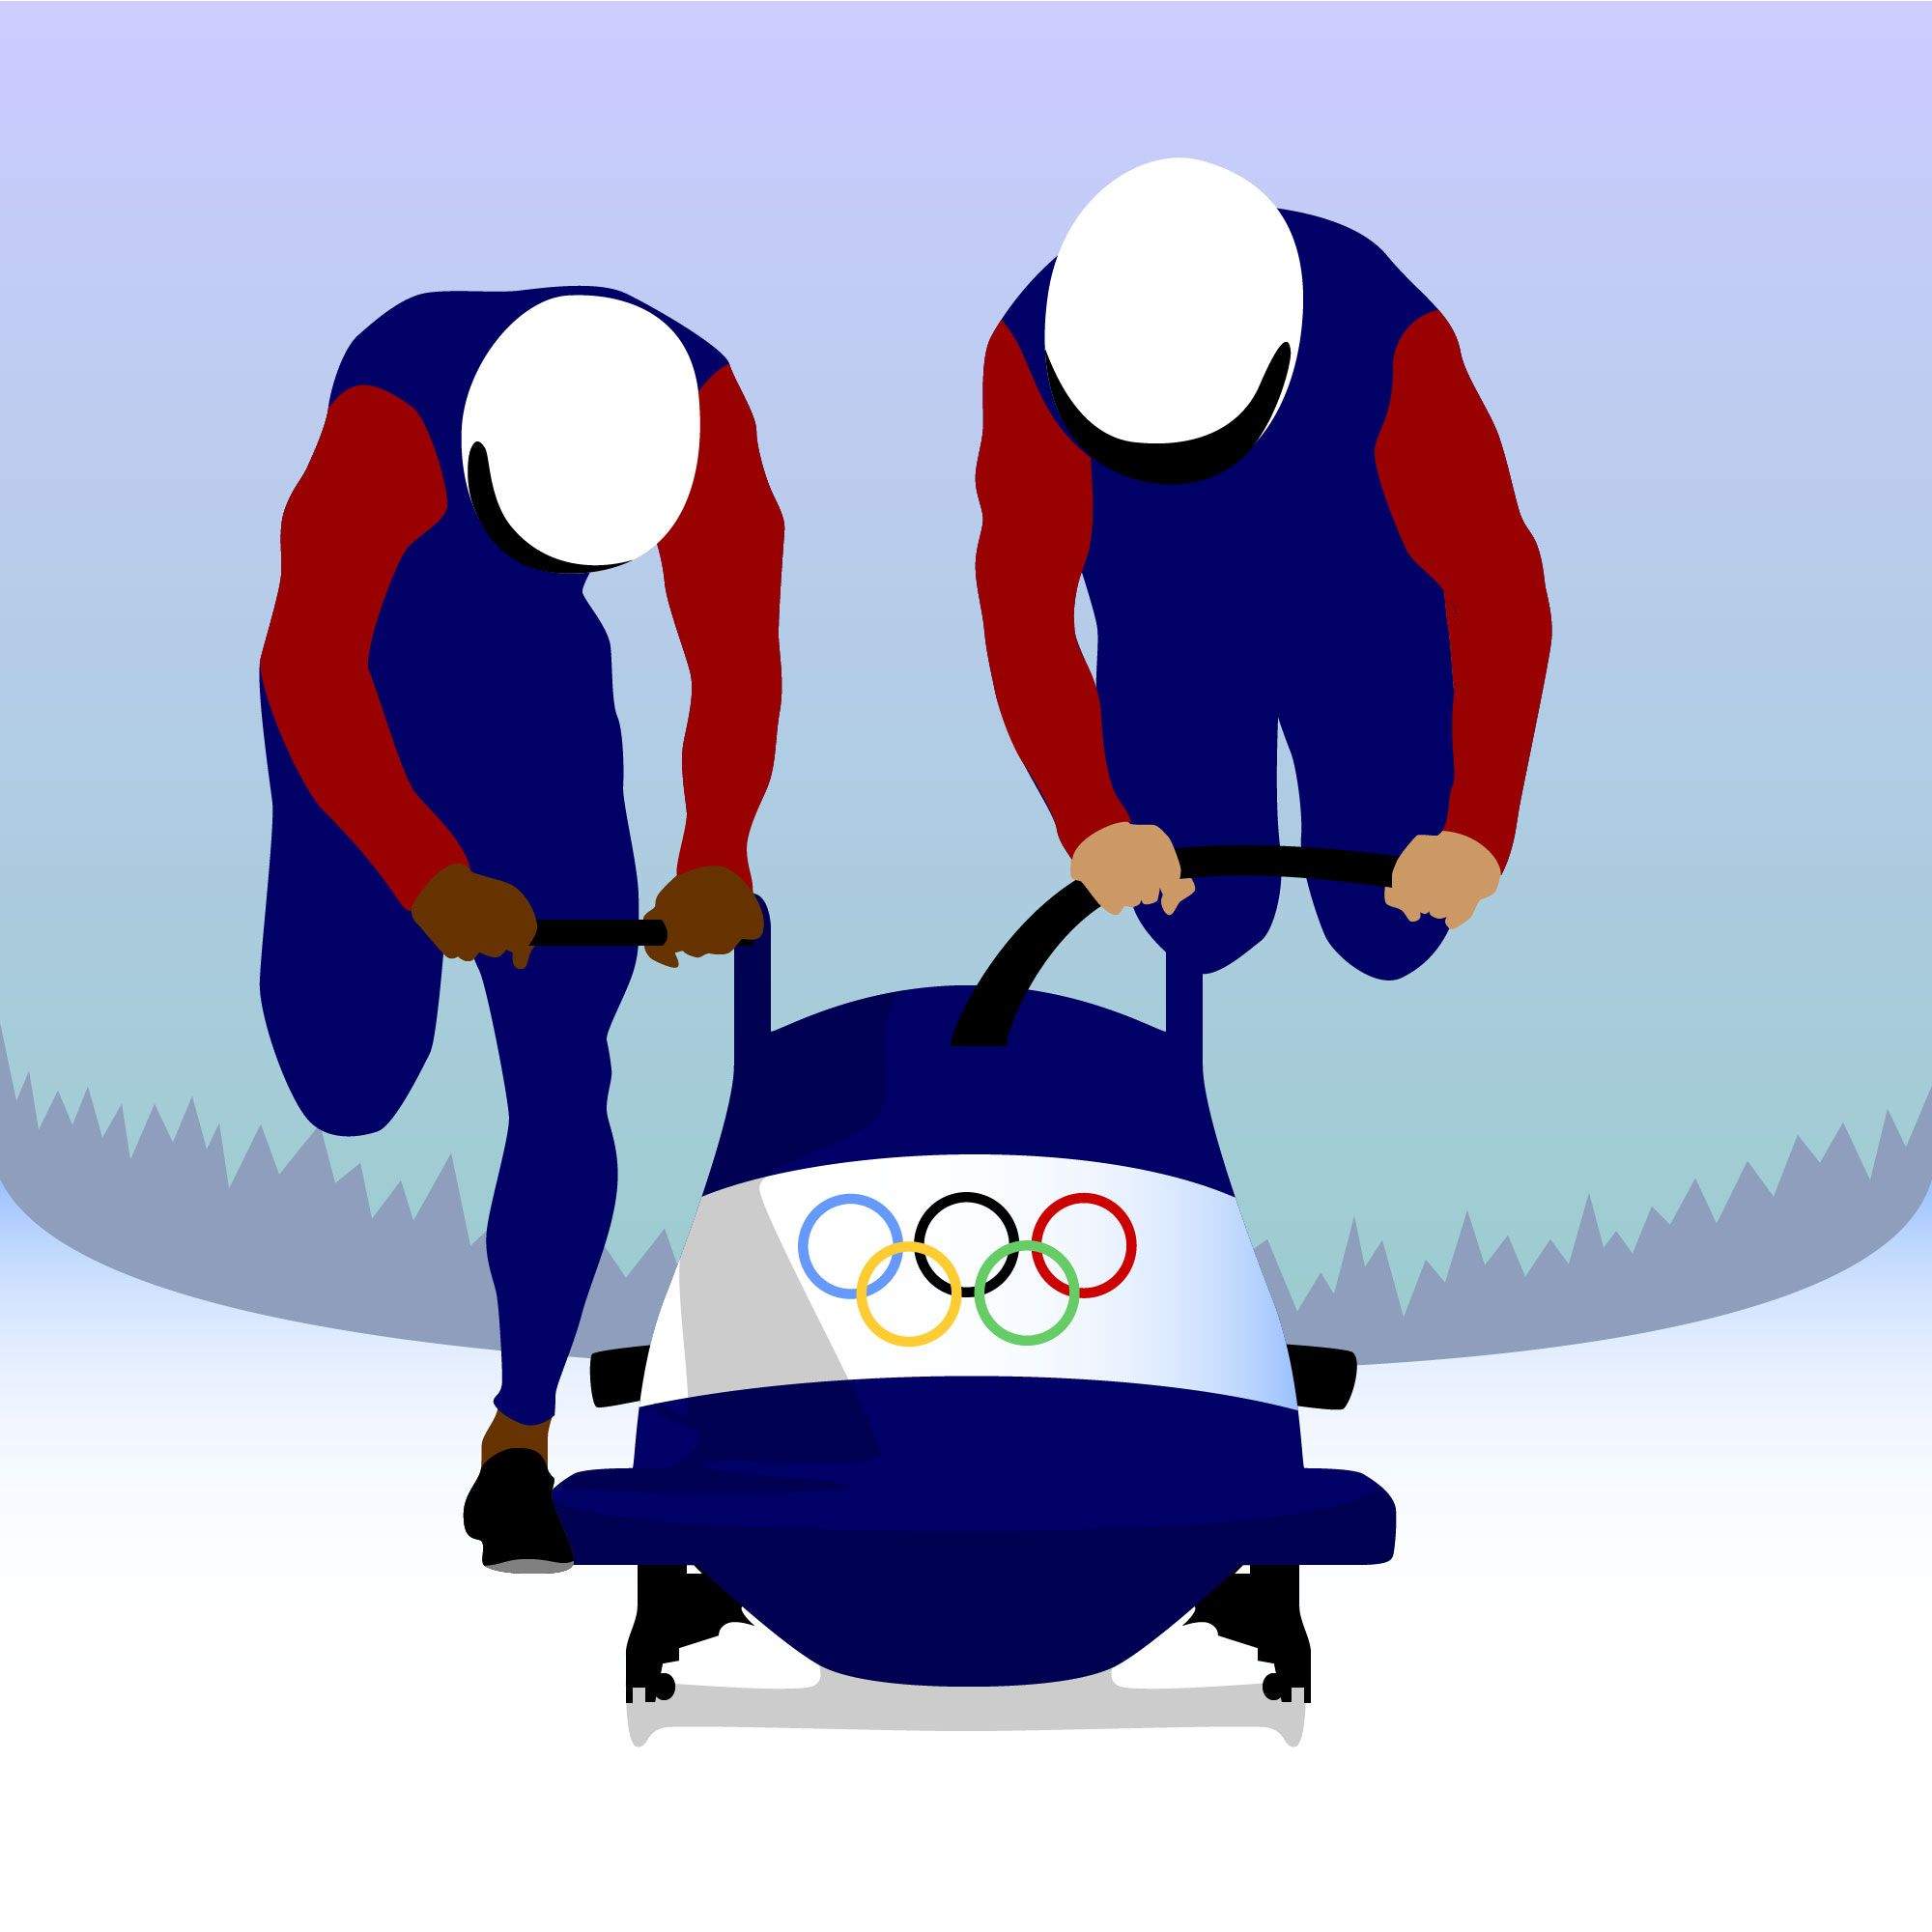 Bobsleigh At The Winter Olympics Bobsleigh Bobsled